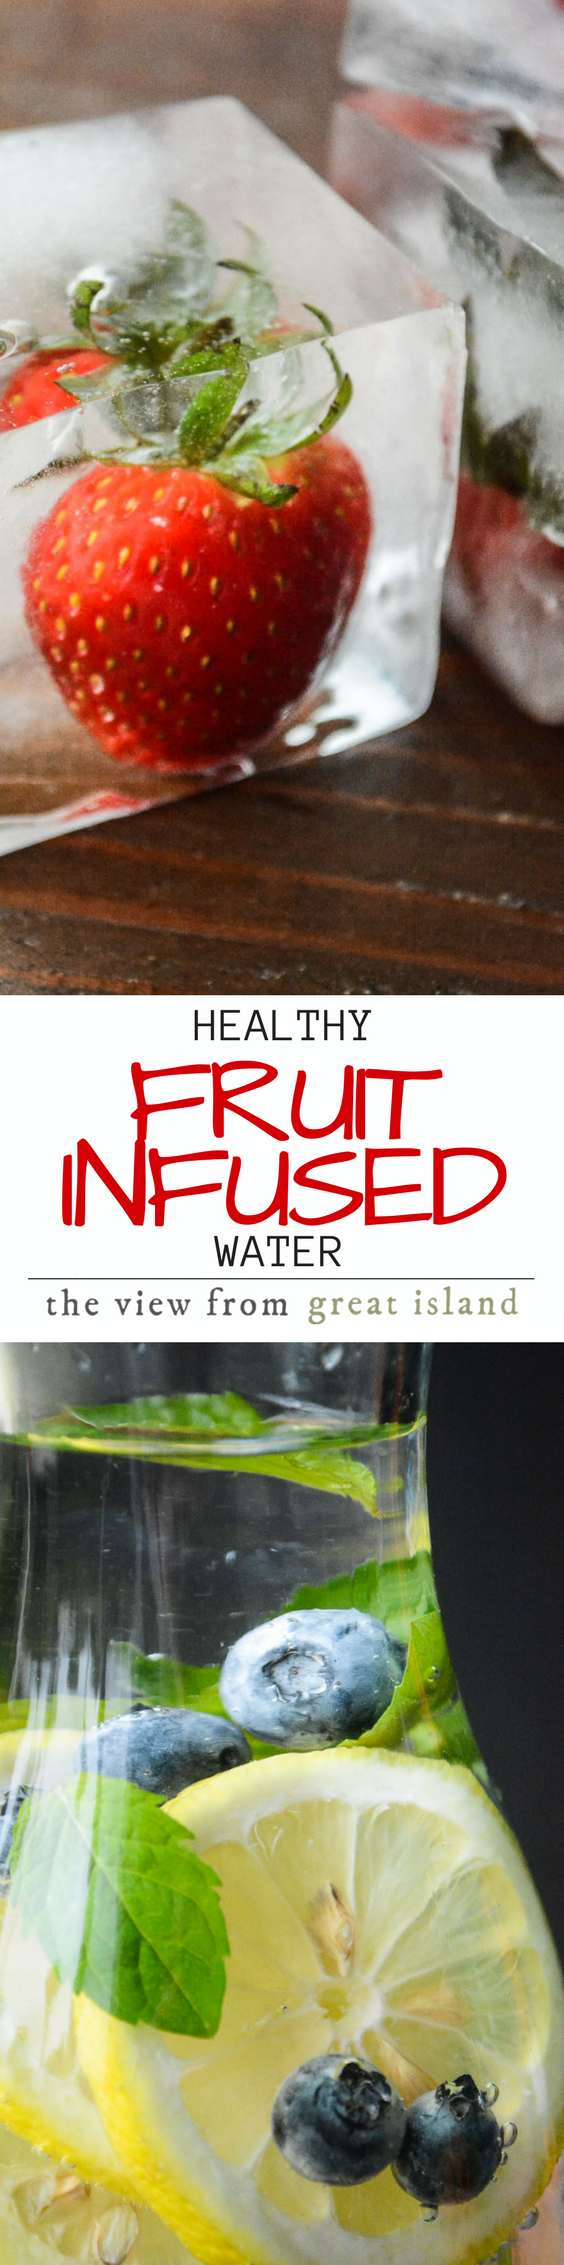 How to Make Healthy Infused Water ~ we all know it's important to drink lots of water, but it's not always easy!  I'll show you how to make your own flavor-infused water that will keep you deliciously hydrated! #water #beverage #healthydrink #hydration #fruit #ice #tvfgi #fruitwater #sugarfree #allnatural #strawberryice #weightwatchers #glutenfree #paleo #whole30 via @https://www.pinterest.com/slmoran21/